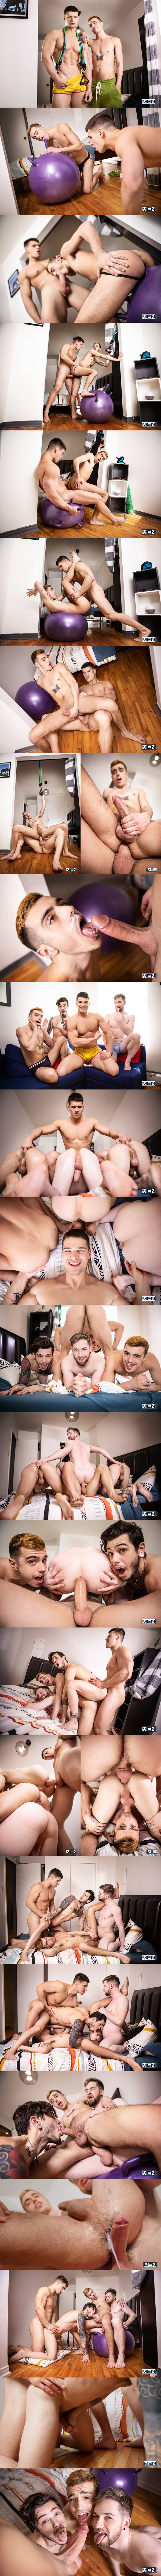 Men - handsome Canadian straight stud Malik Delgaty barebacks Sean Peek, Thyle Knoxx and Dex Parker before Malik fucks the cum out of Sean and Dex in Gawkers Uncut 02